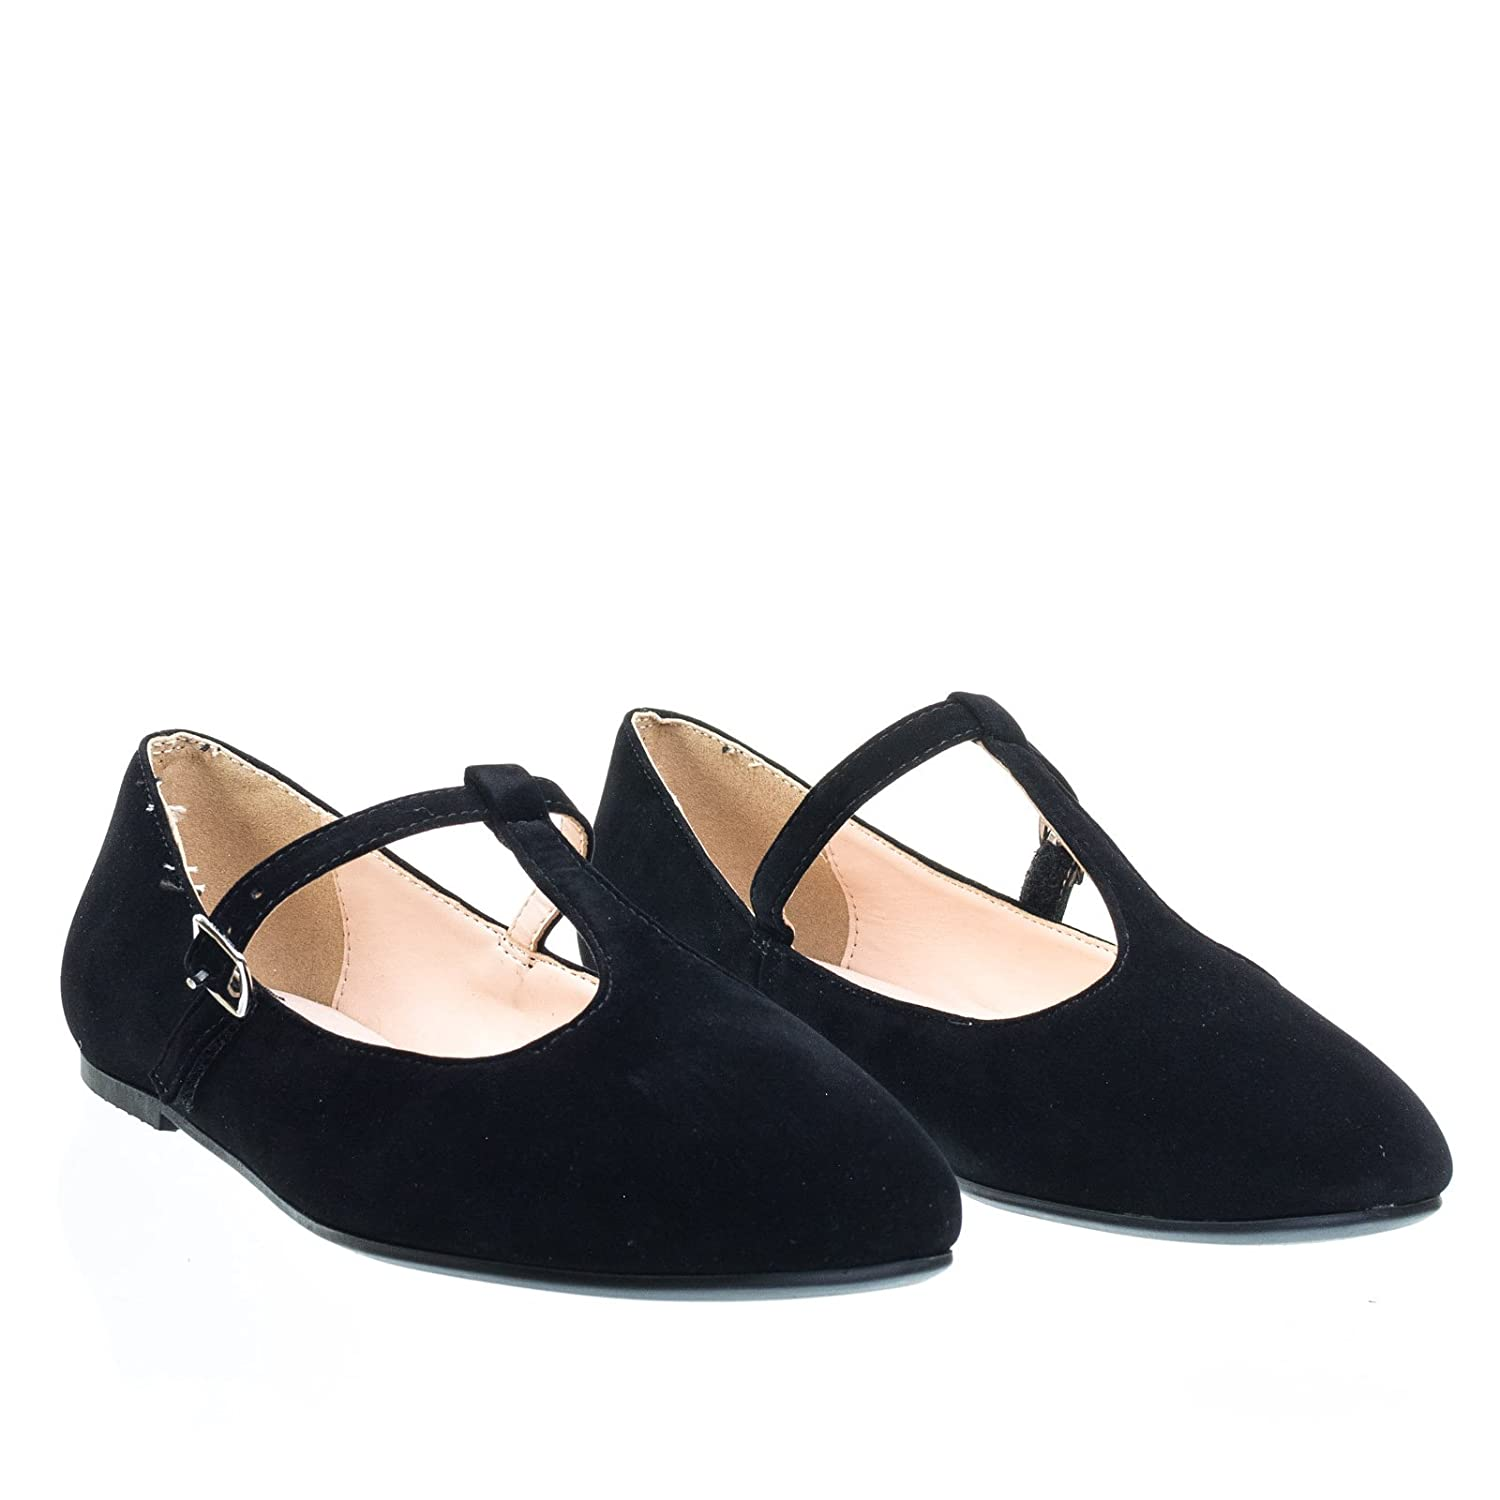 1920s Style Shoes Ballet T-Strap Mary-Jane Flats. Womens Ballerina Round Toe Comfort Flats $23.50 AT vintagedancer.com